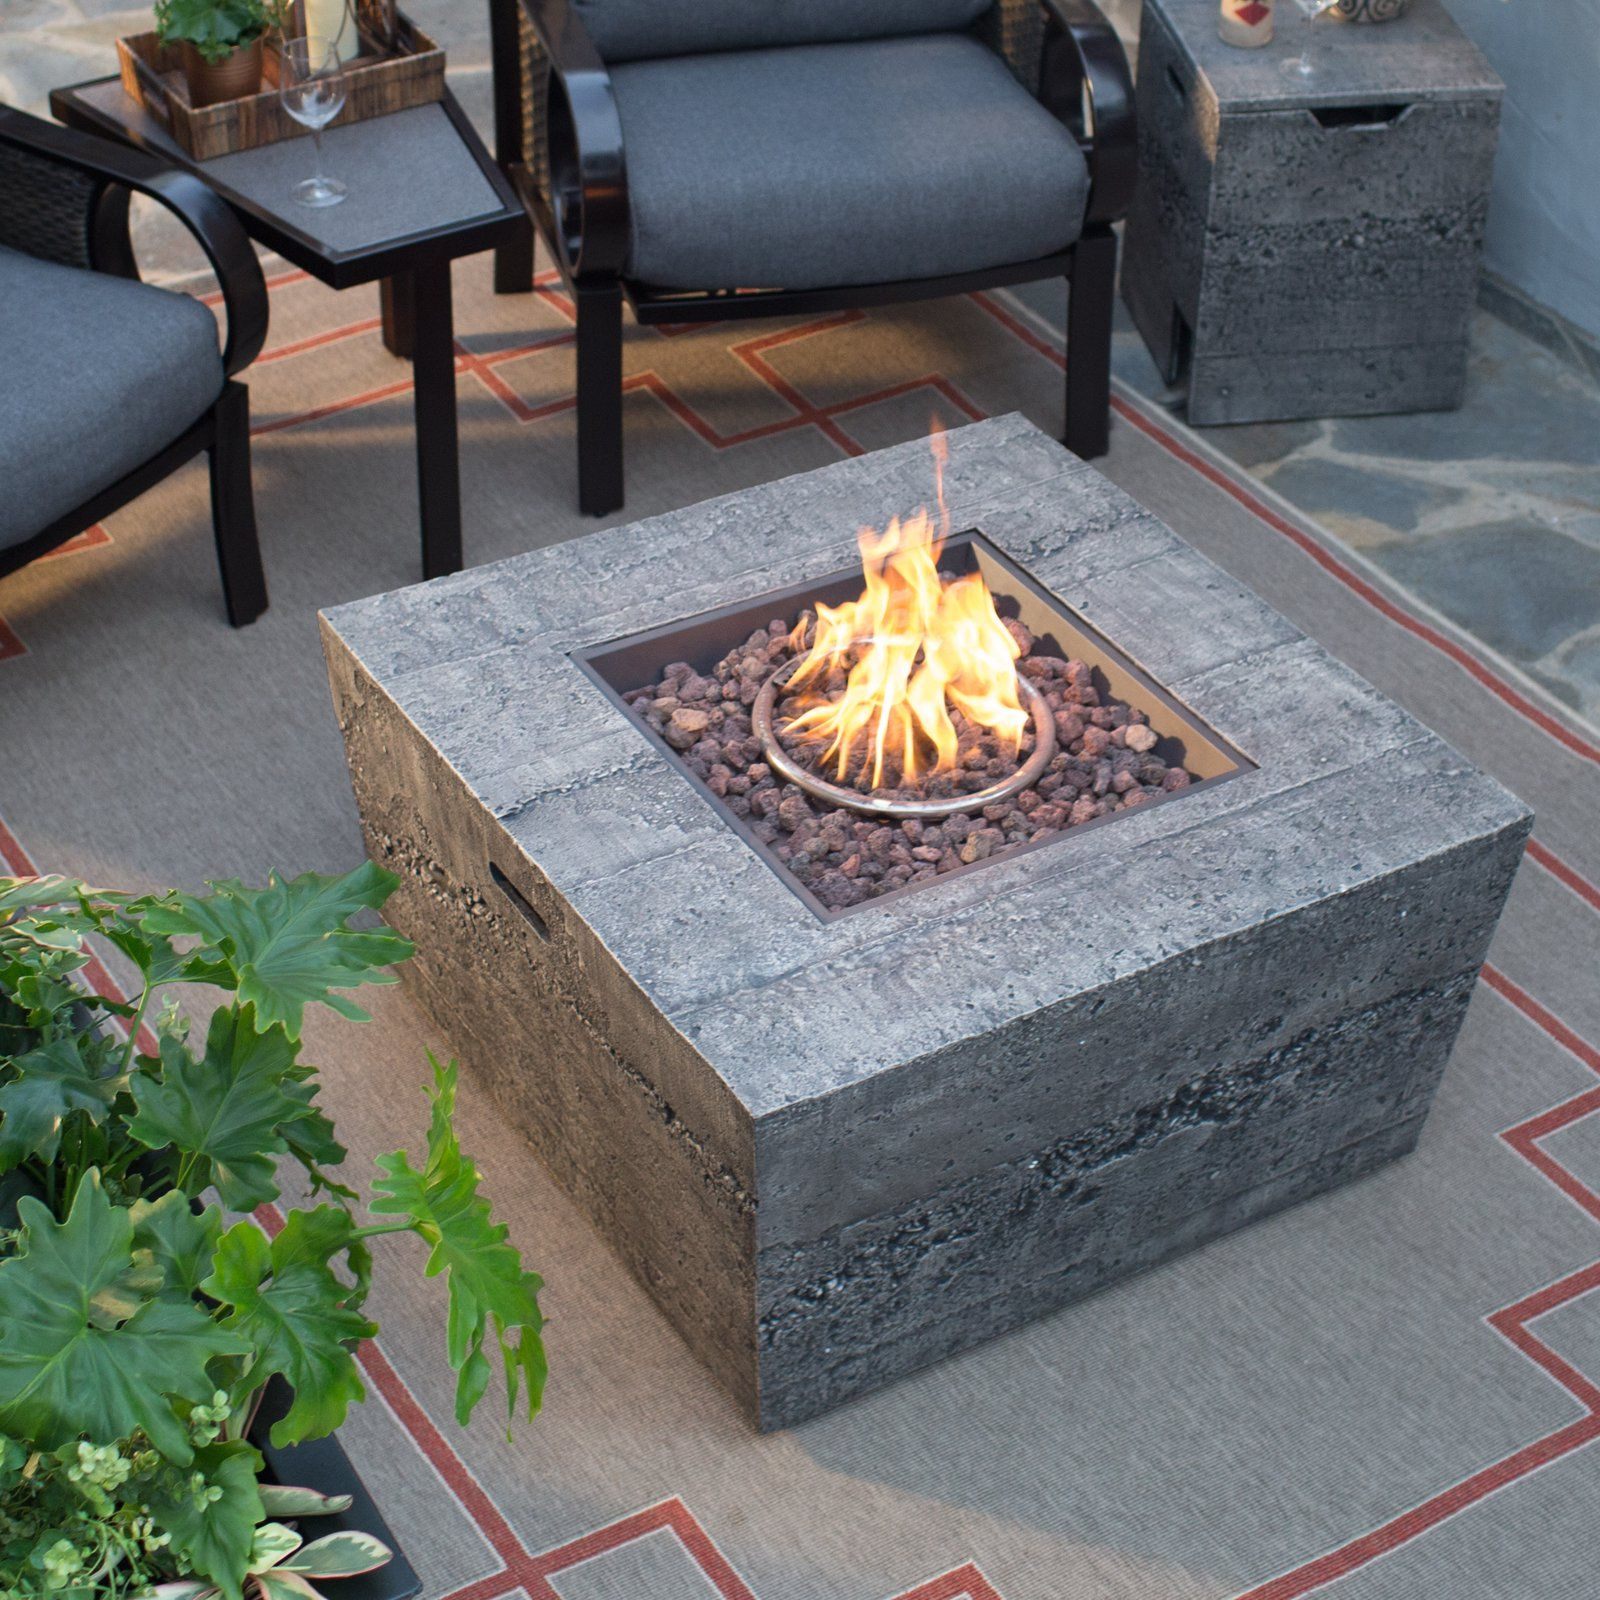 Belham Living Glacier Stone 35 In Square Gas Fire Pit Table With Free Cover Gas Firepit Gas Fire Pit Table Square Fire Pit